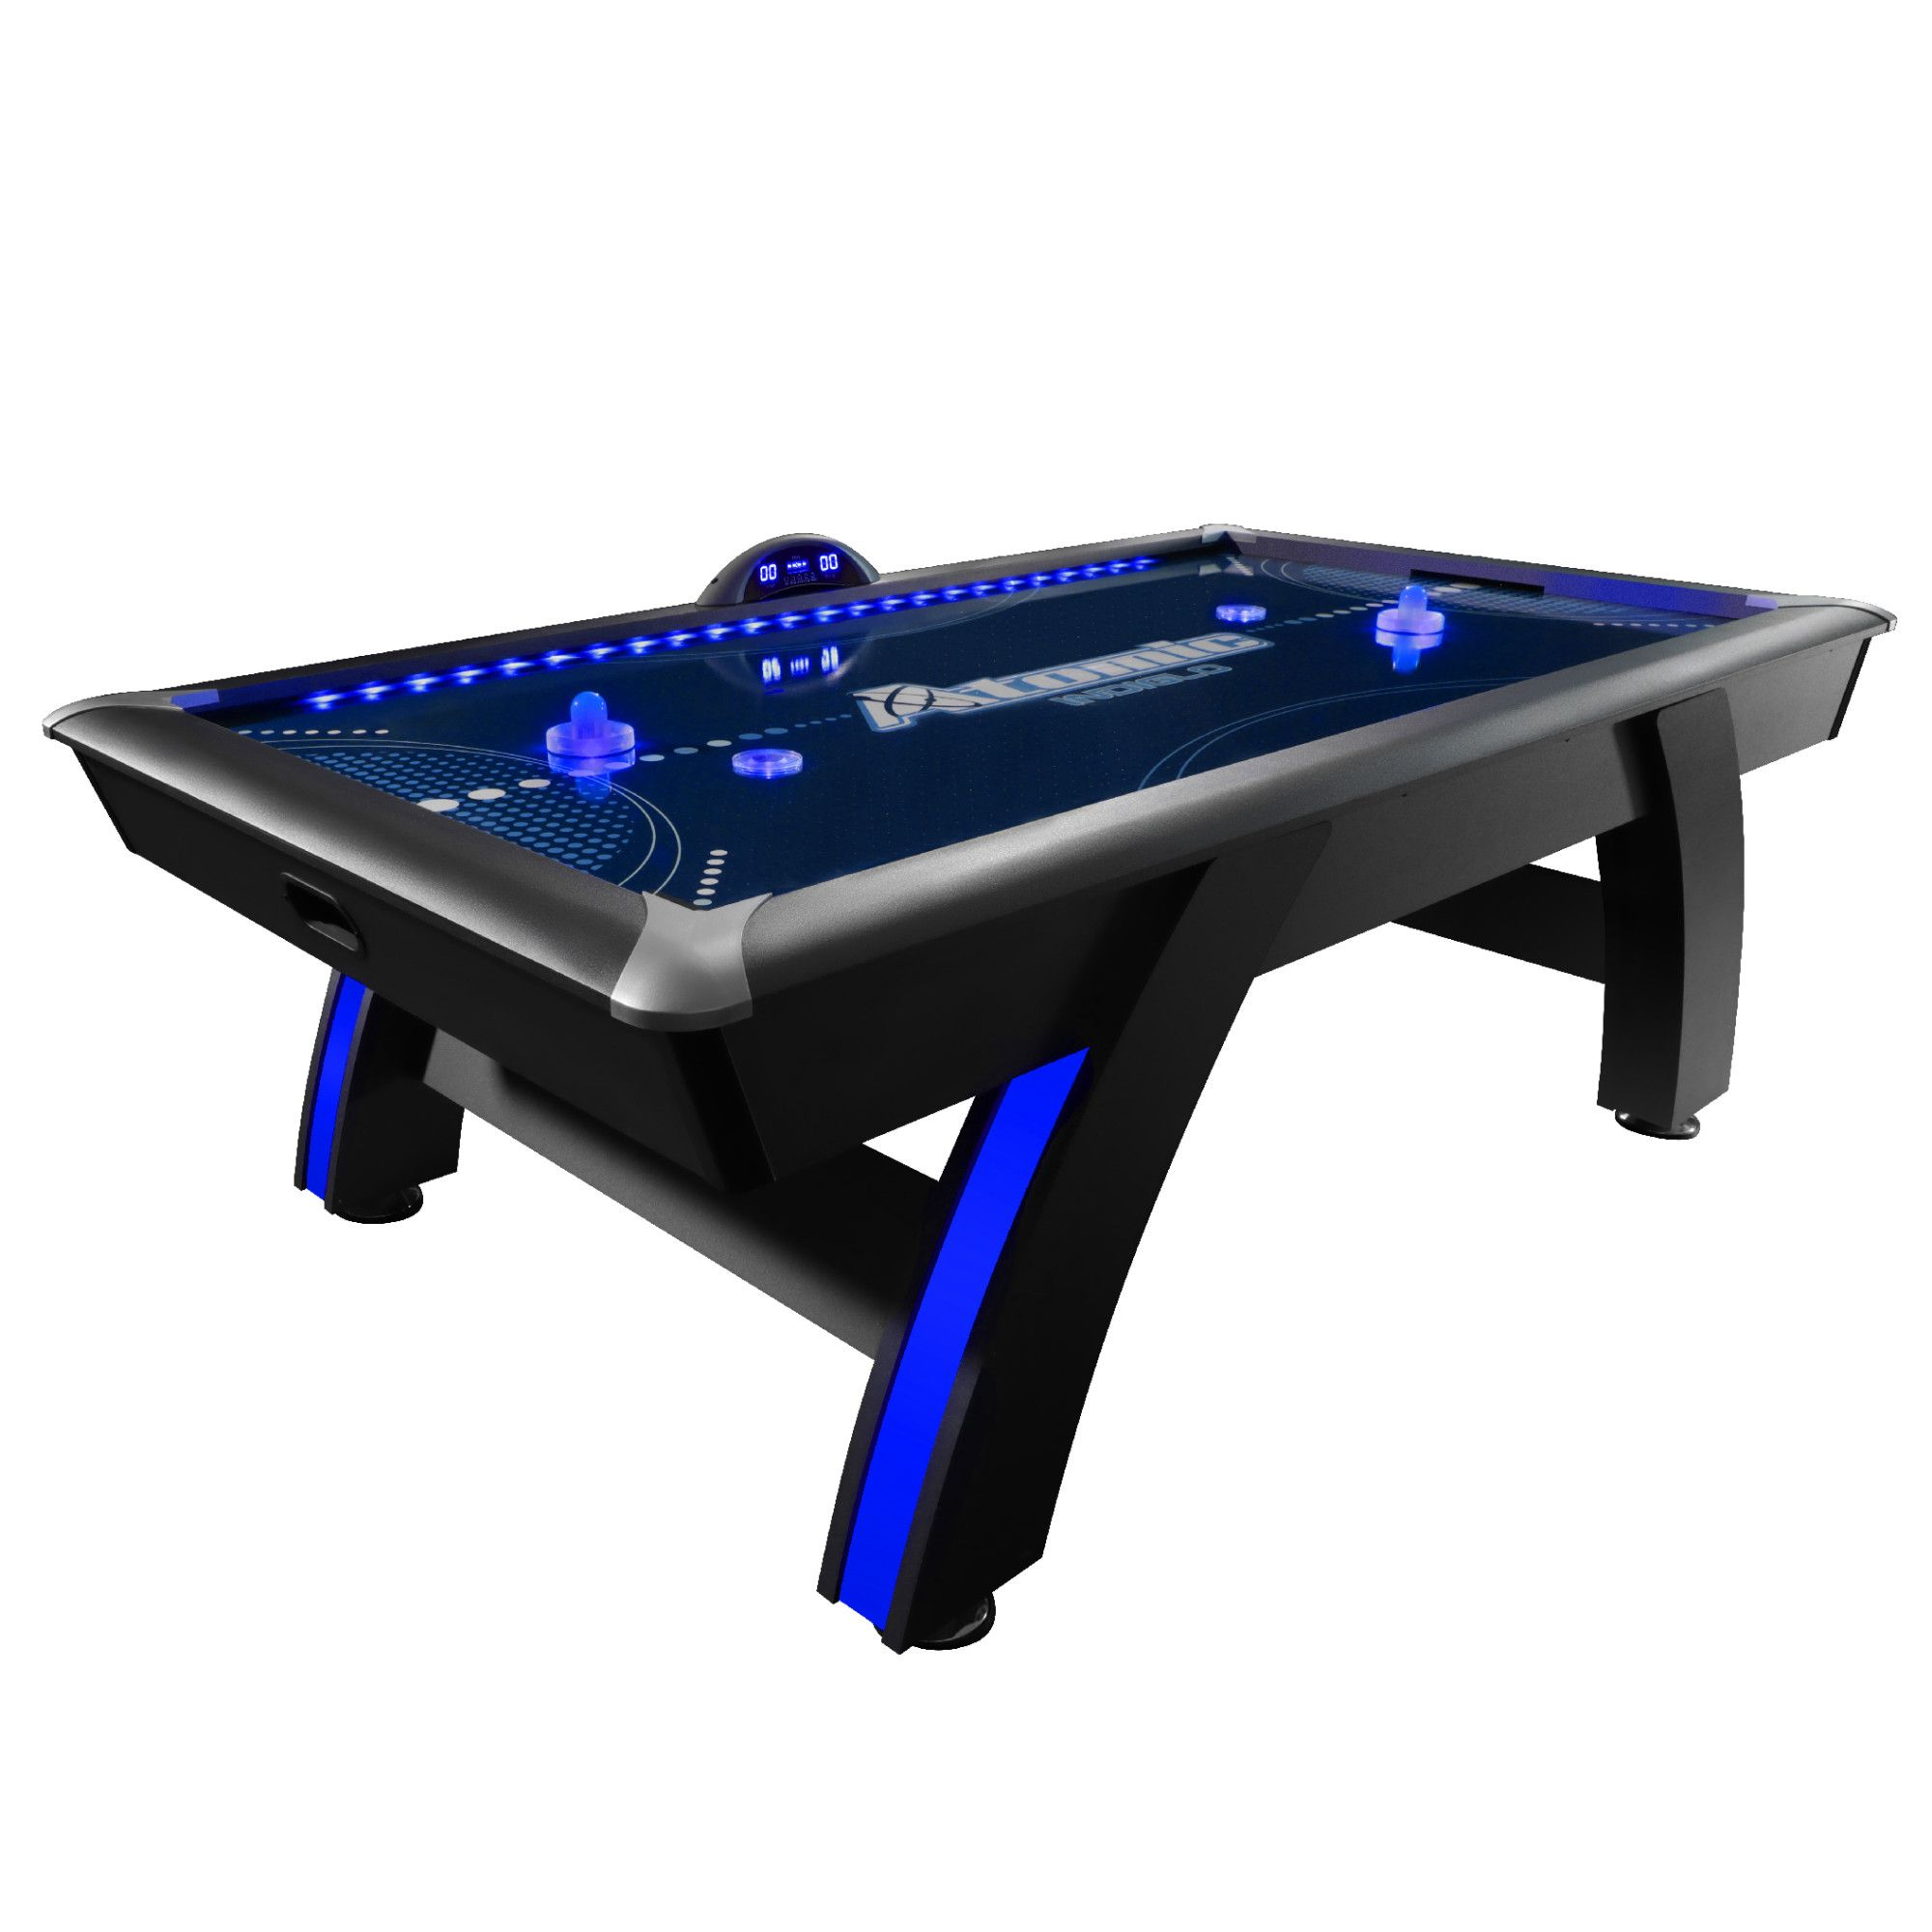 Atomic 7 5 Indiglo Led Light Up Arcade Air Powered Hockey Table Includes 2 Led Pushers And Led Puck Walmart Com Air Hockey Table Air Hockey Led Lights